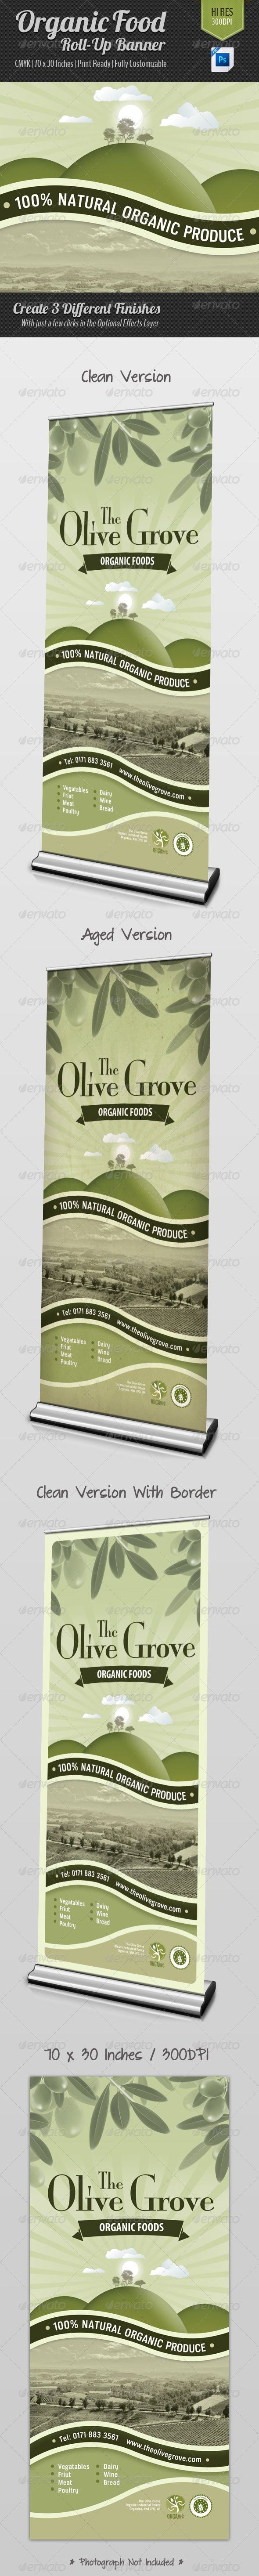 Organic Food Roll-Up Banner Signage #GraphicRiver Organic Food Roll-Up Banner / Signage Perfect For: Organic Food / Organic Produce Company What You Get: 1 x .PSD File 1 x .txt File The Detail: 70×30 Inches 300 DPI CMYK Print Ready with Bleed Guides Easy to edit with well Organized Layers Optional Effects Layers (For Aged Look & Border) The Fonts: The Design use 2 Fonts (Both Free): .ufonts /fonts/veriox-rg.html .fontpalace /font-details/Mona+Lisa+Solid+ITC+TT/ If You Buy? – You Like? –…